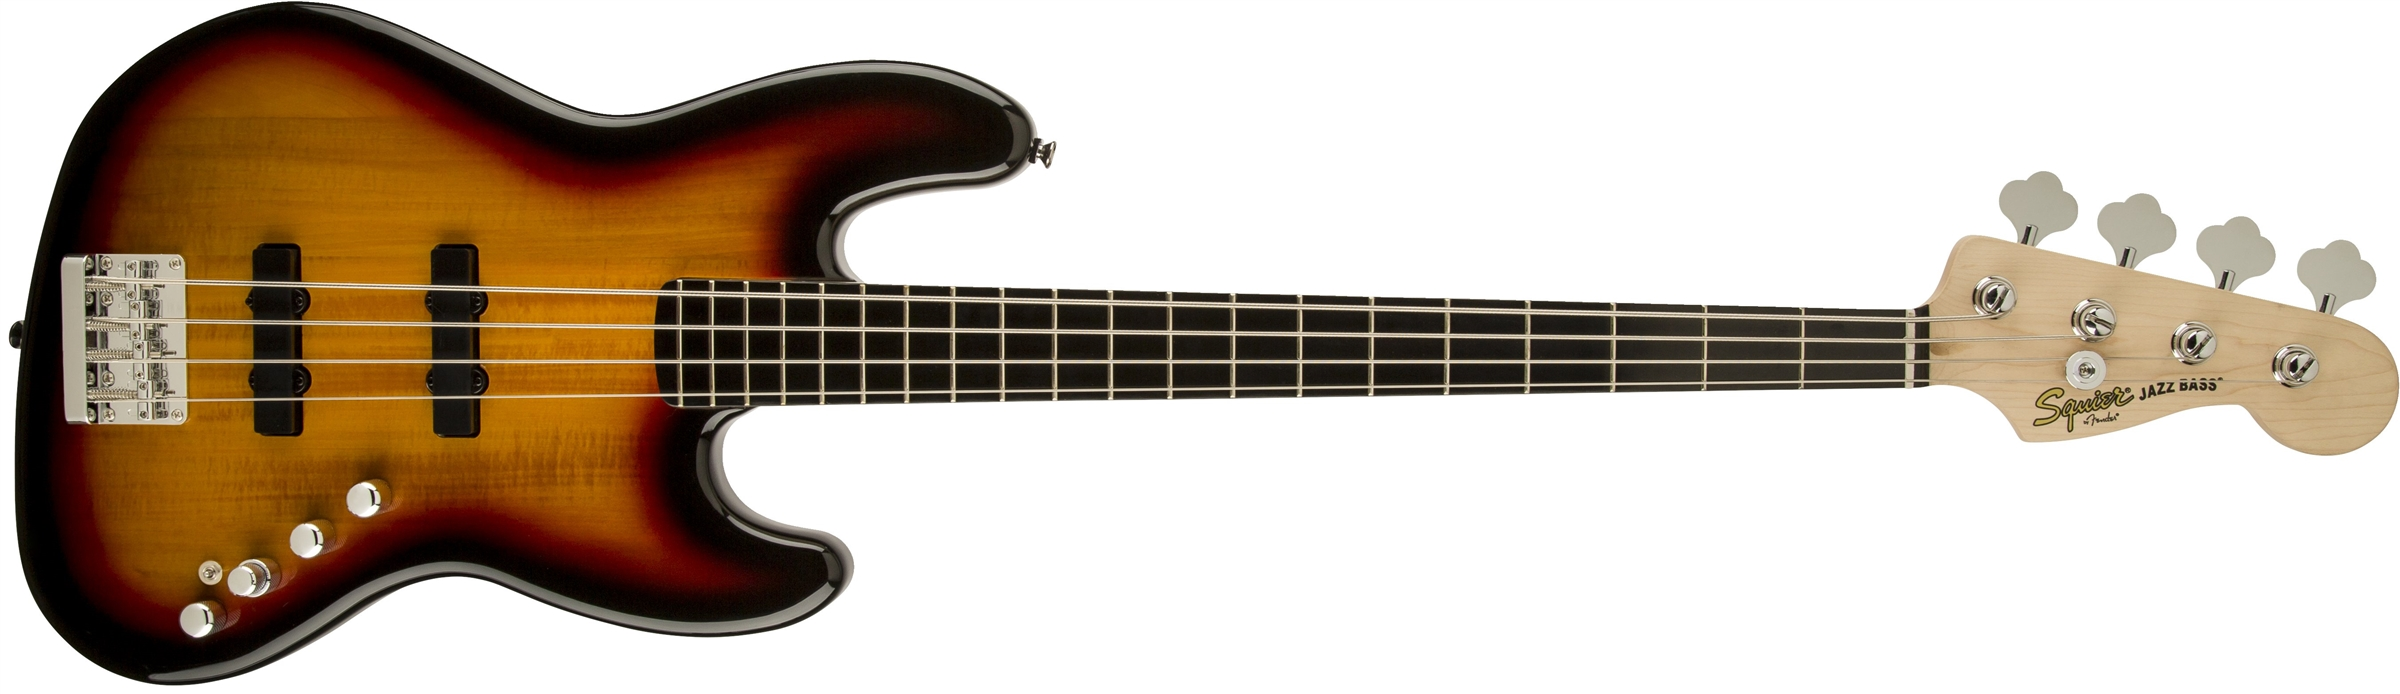 Squier Deluxe Jazz Bass Active IV 4-String Electric Bass Guitar 3-Tone